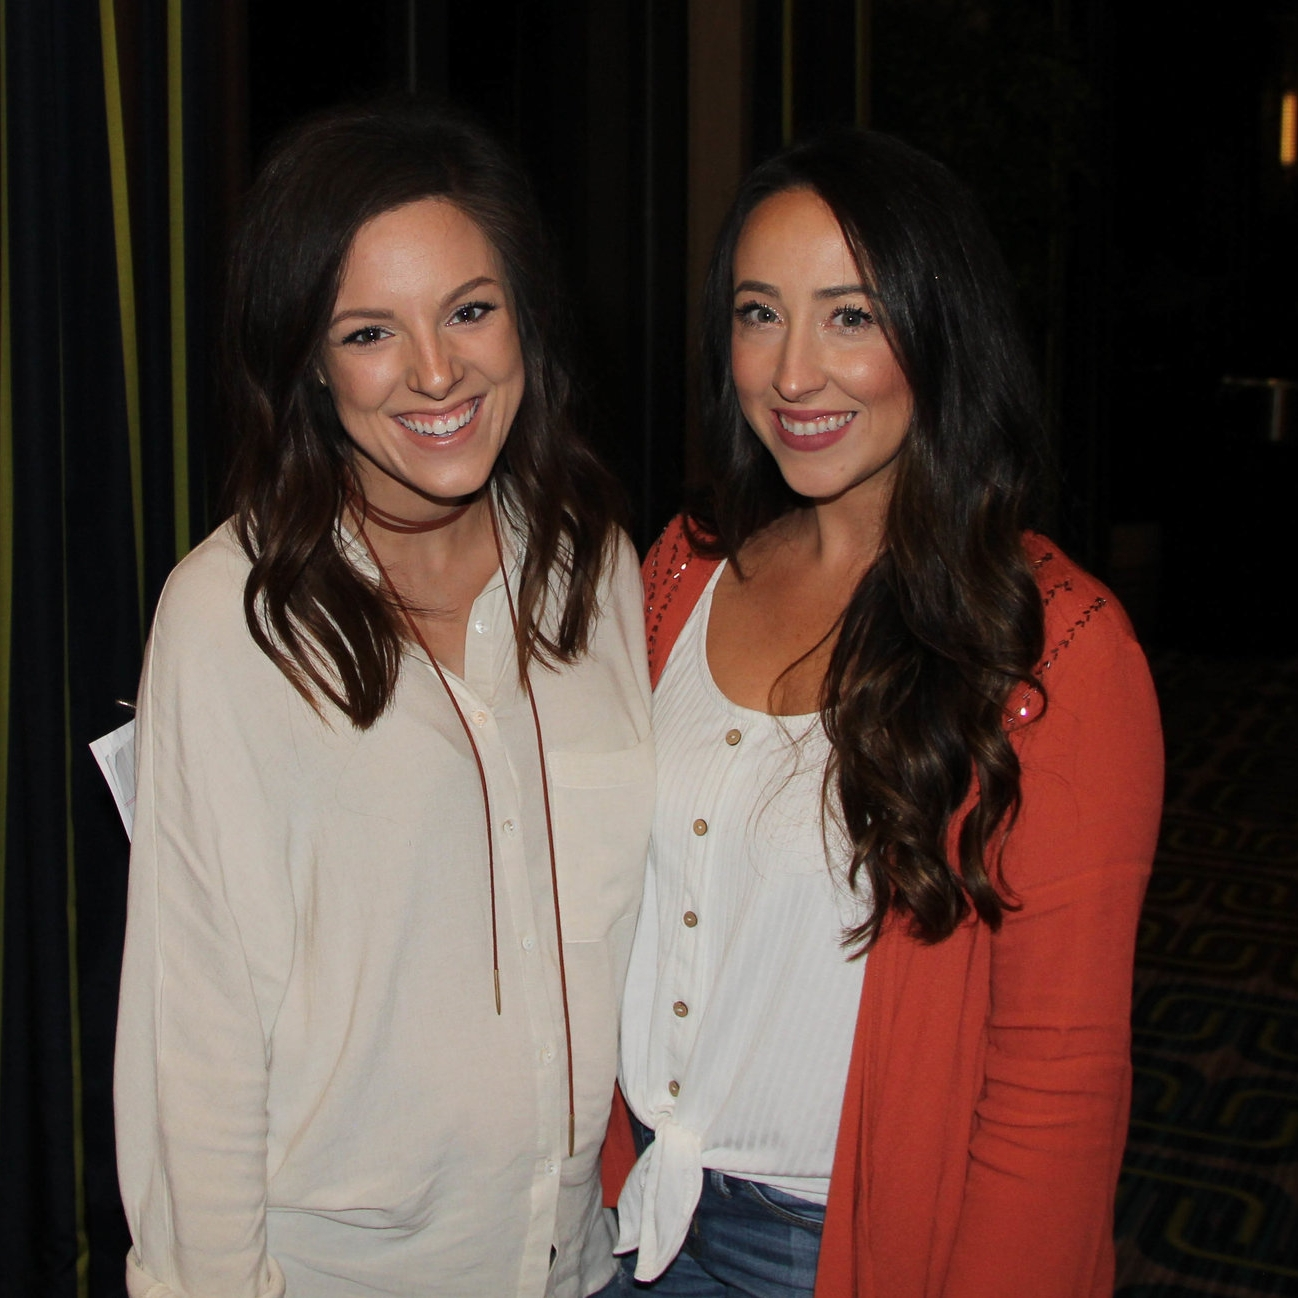 Brittany Brooks and Whitney Brooks